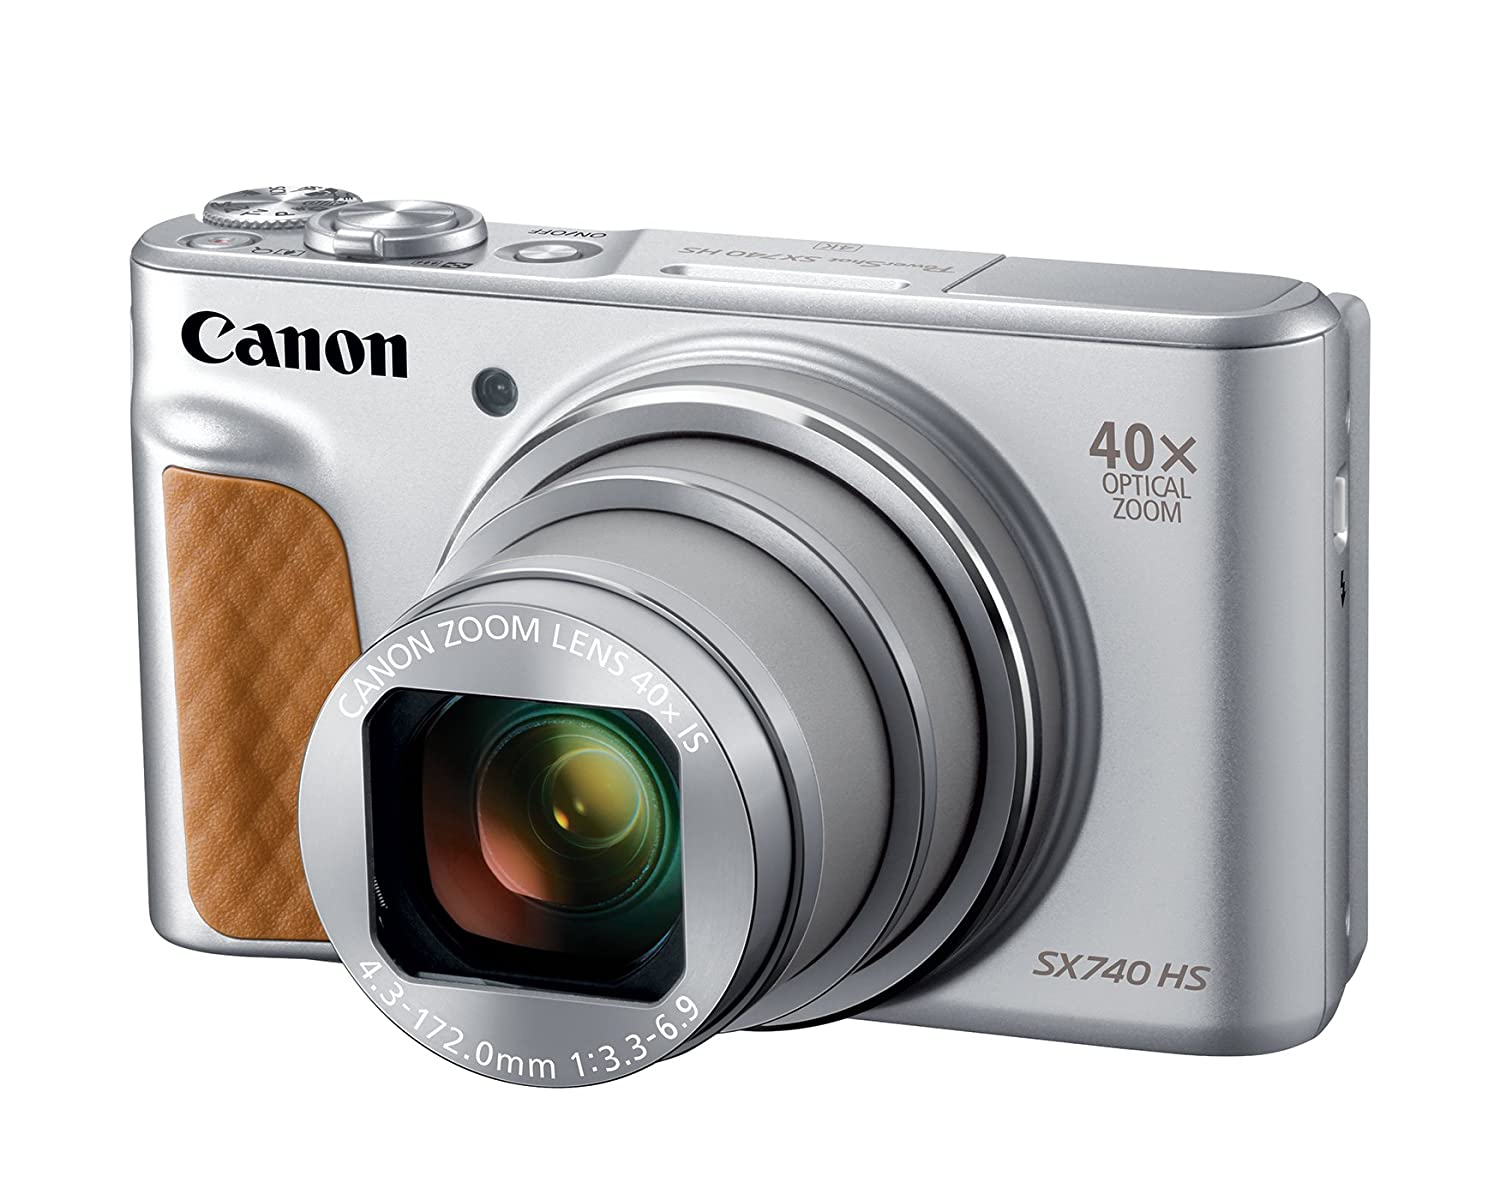 Canon PowerShot SX740 Review